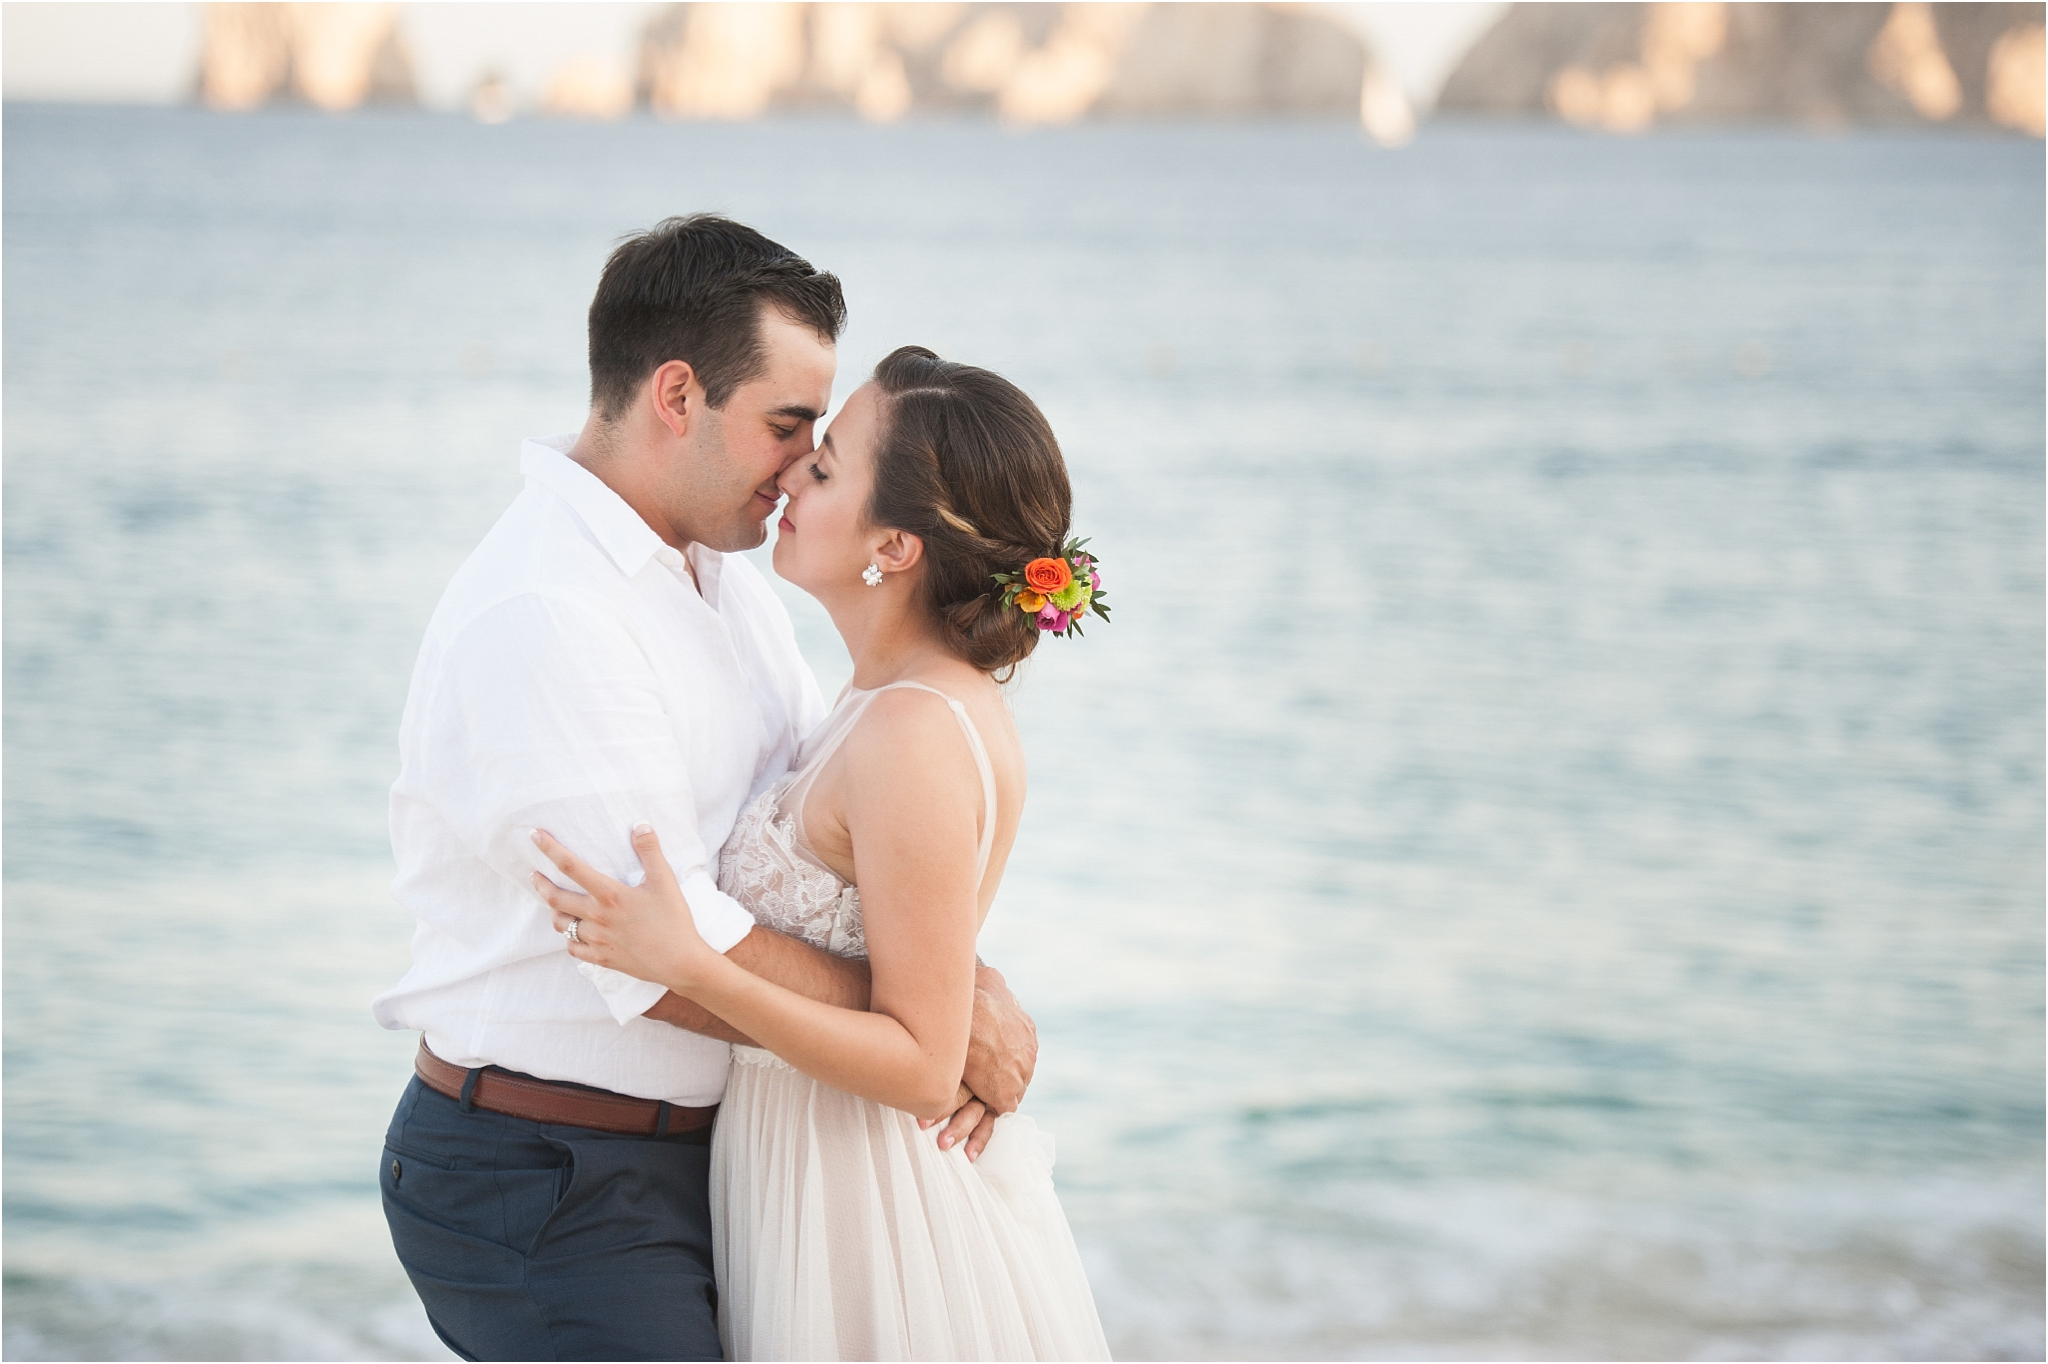 kayla kitts photography - albuquerque wedding photographer - new mexico wedding photographer - desination wedding photographer - cabo wedding photographer_0049.jpg